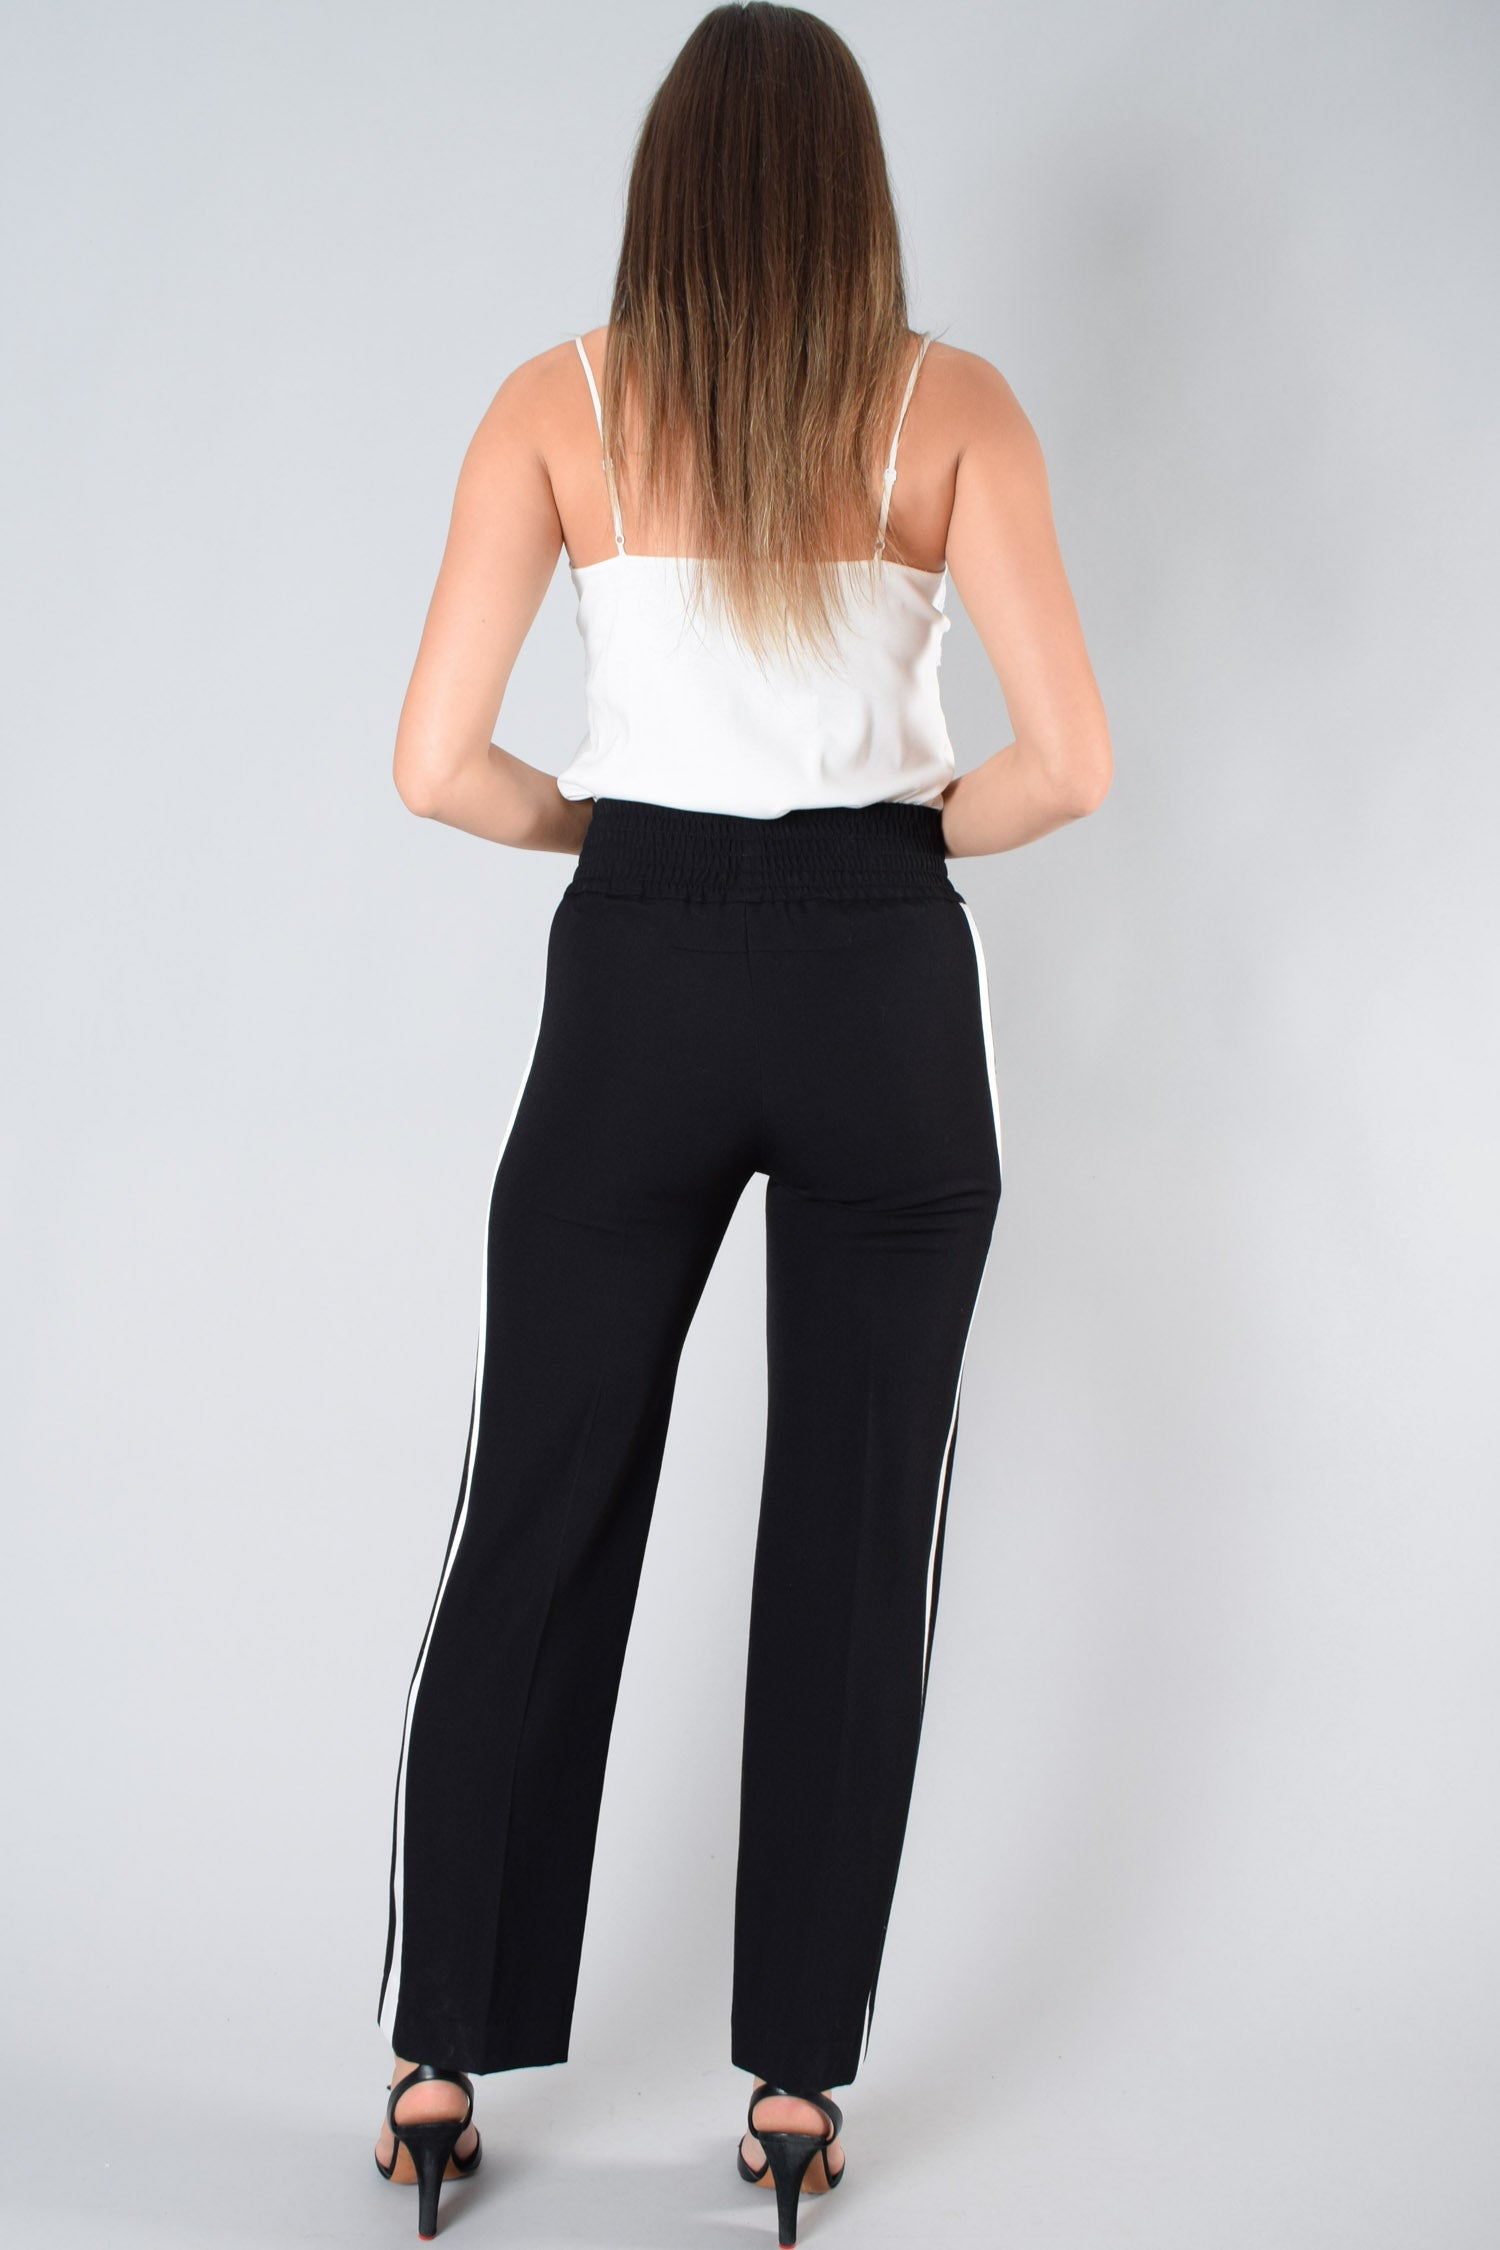 Givenchy Black High-Waisted Pants w/ White Stripe Size 34